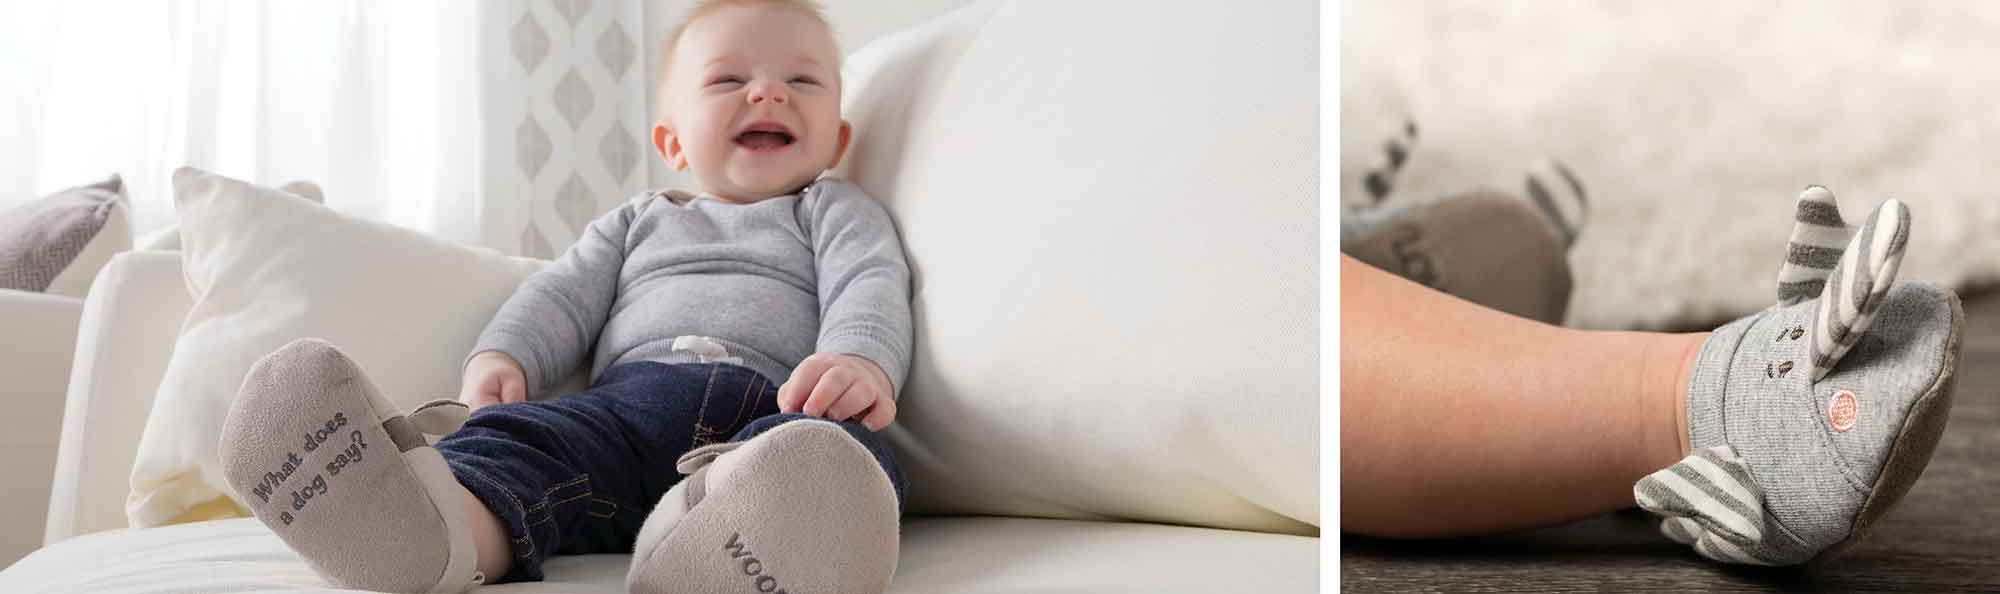 a baby laughing and wearing a pair of baby boots